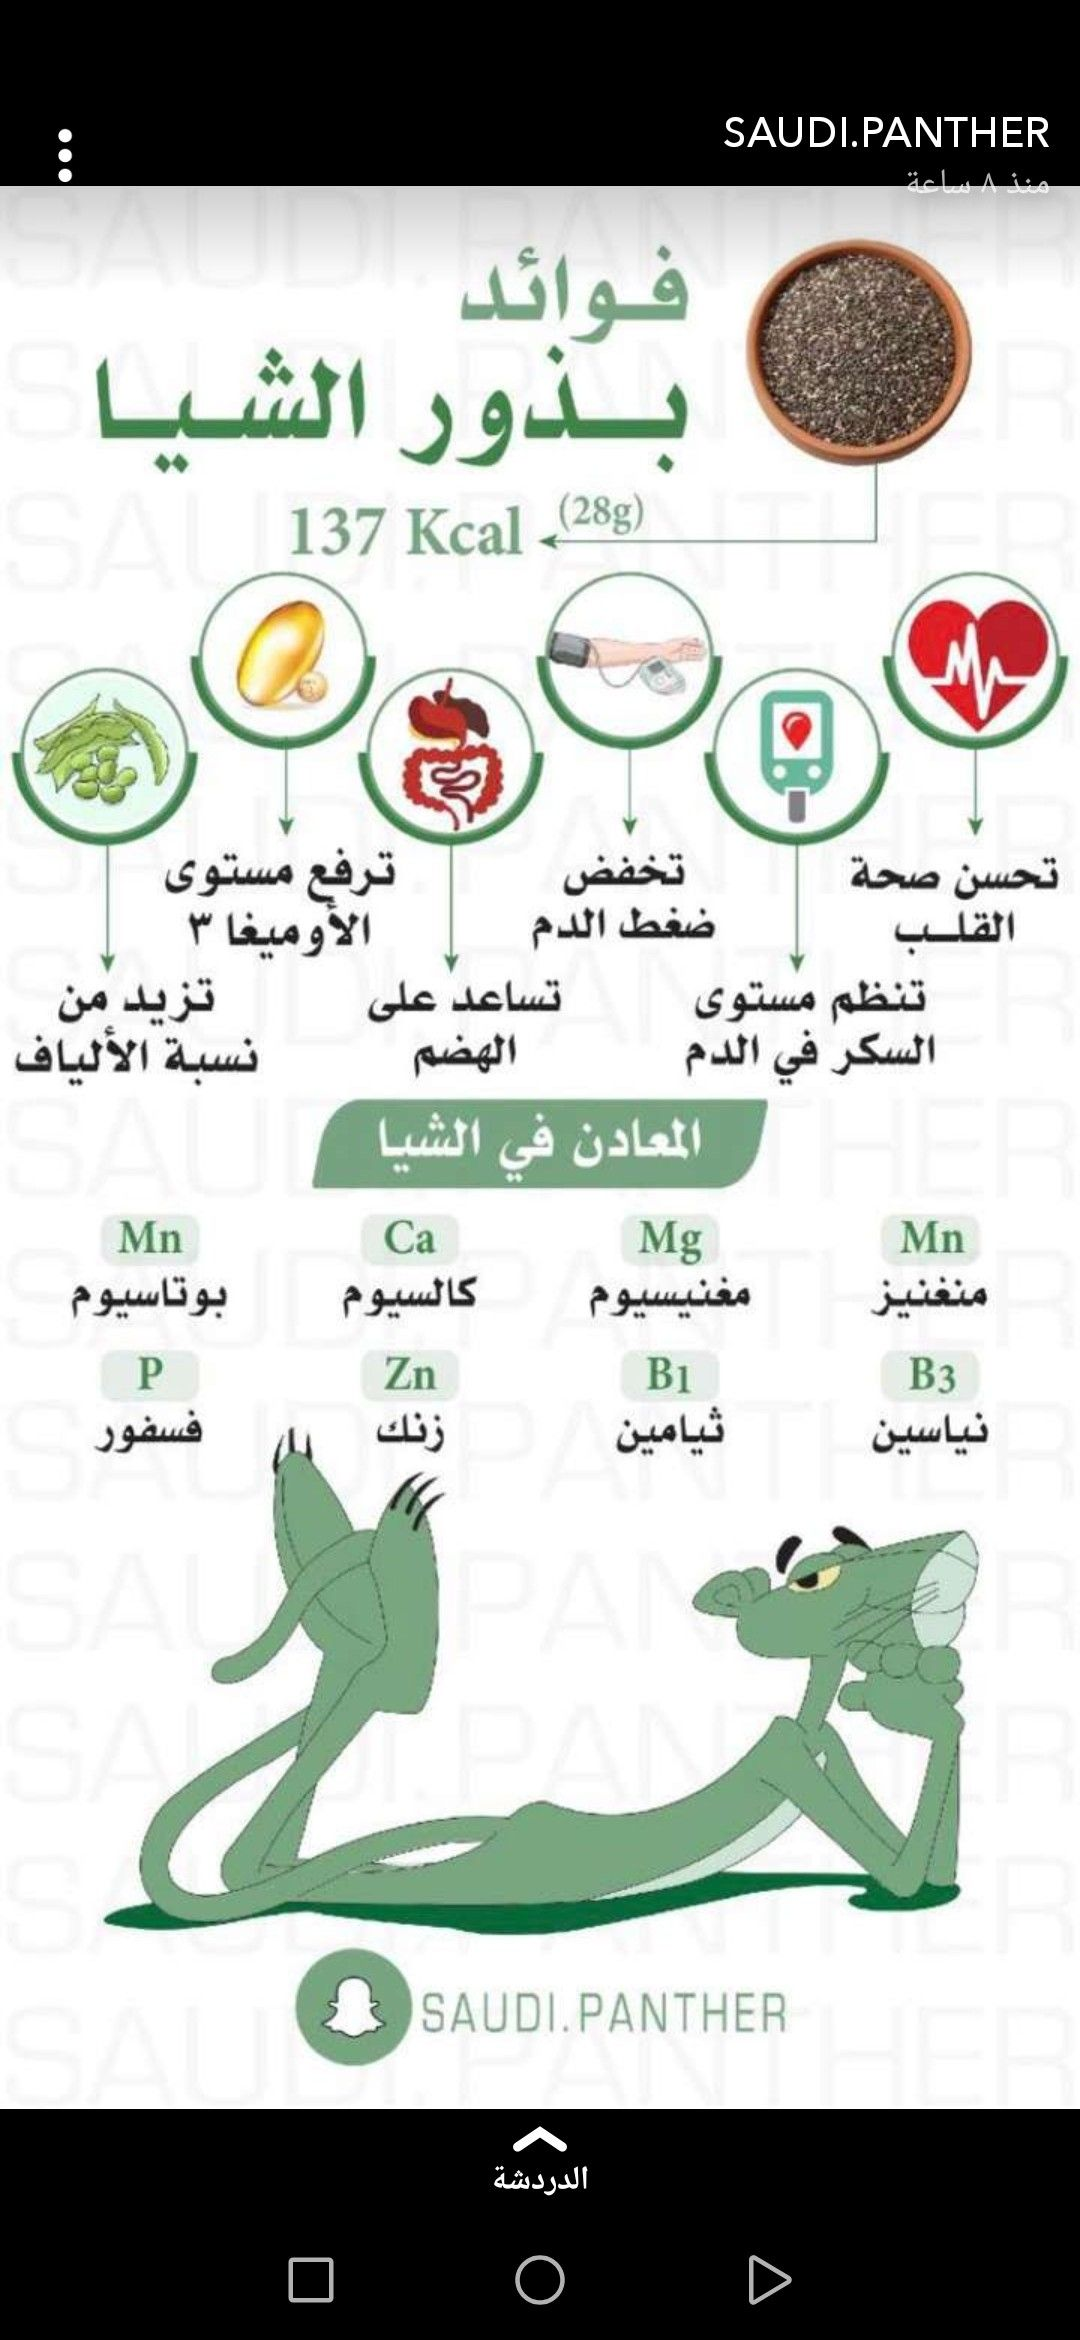 Pin By Om Mohammed On Healthy Life Experience How To Stay Healthy Health Facts Food Health Facts